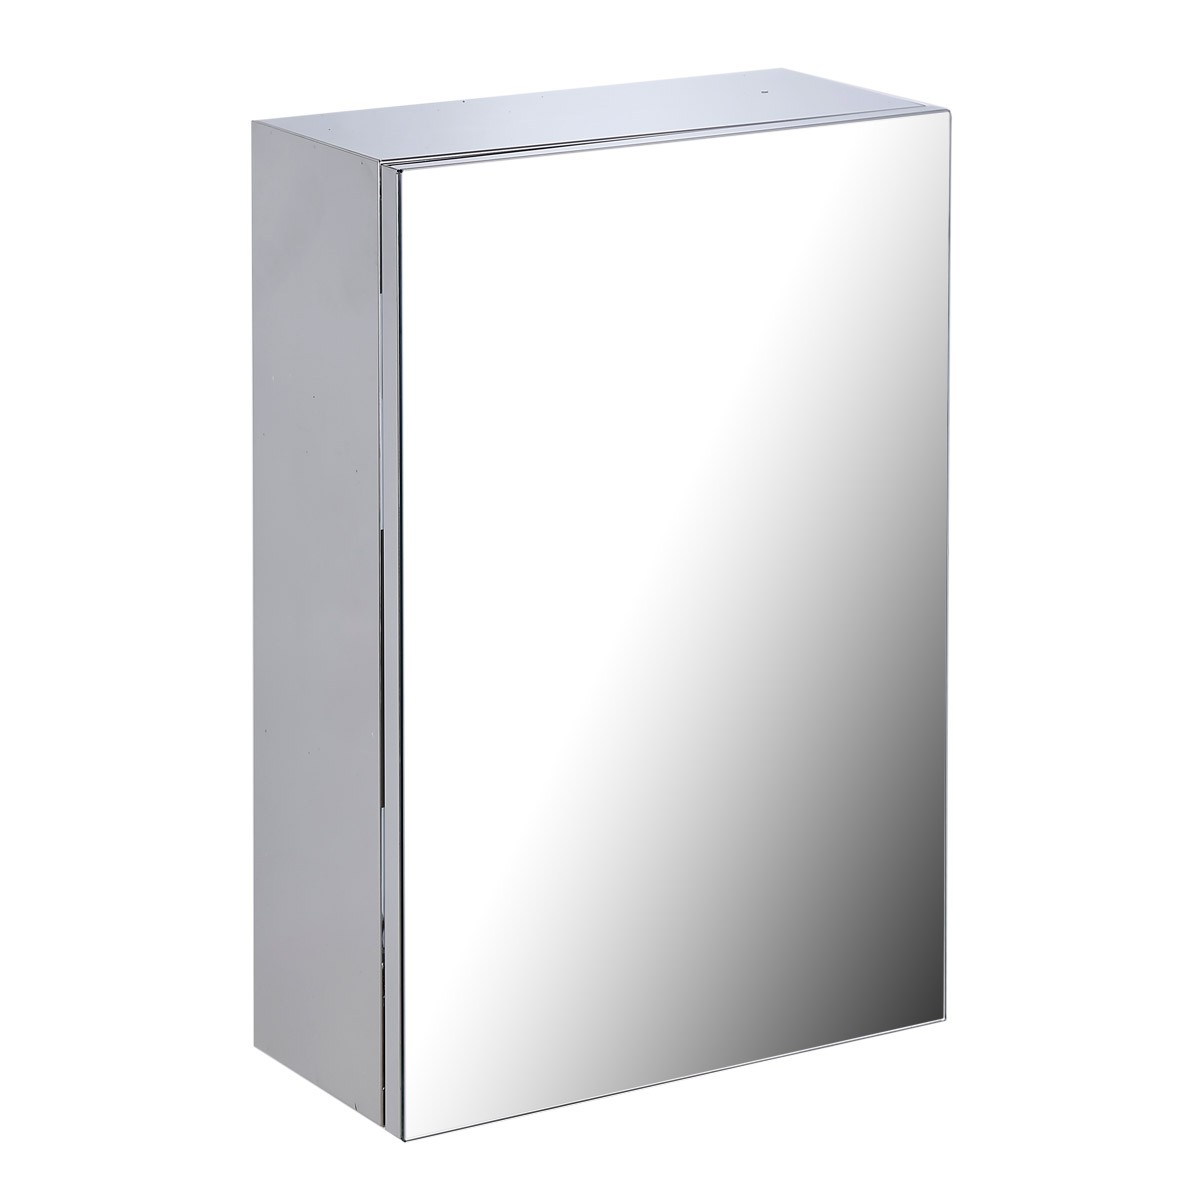 22inch Stainless Steel Medicine Cabinet Mirror Wall Mount Medicine Cabinet